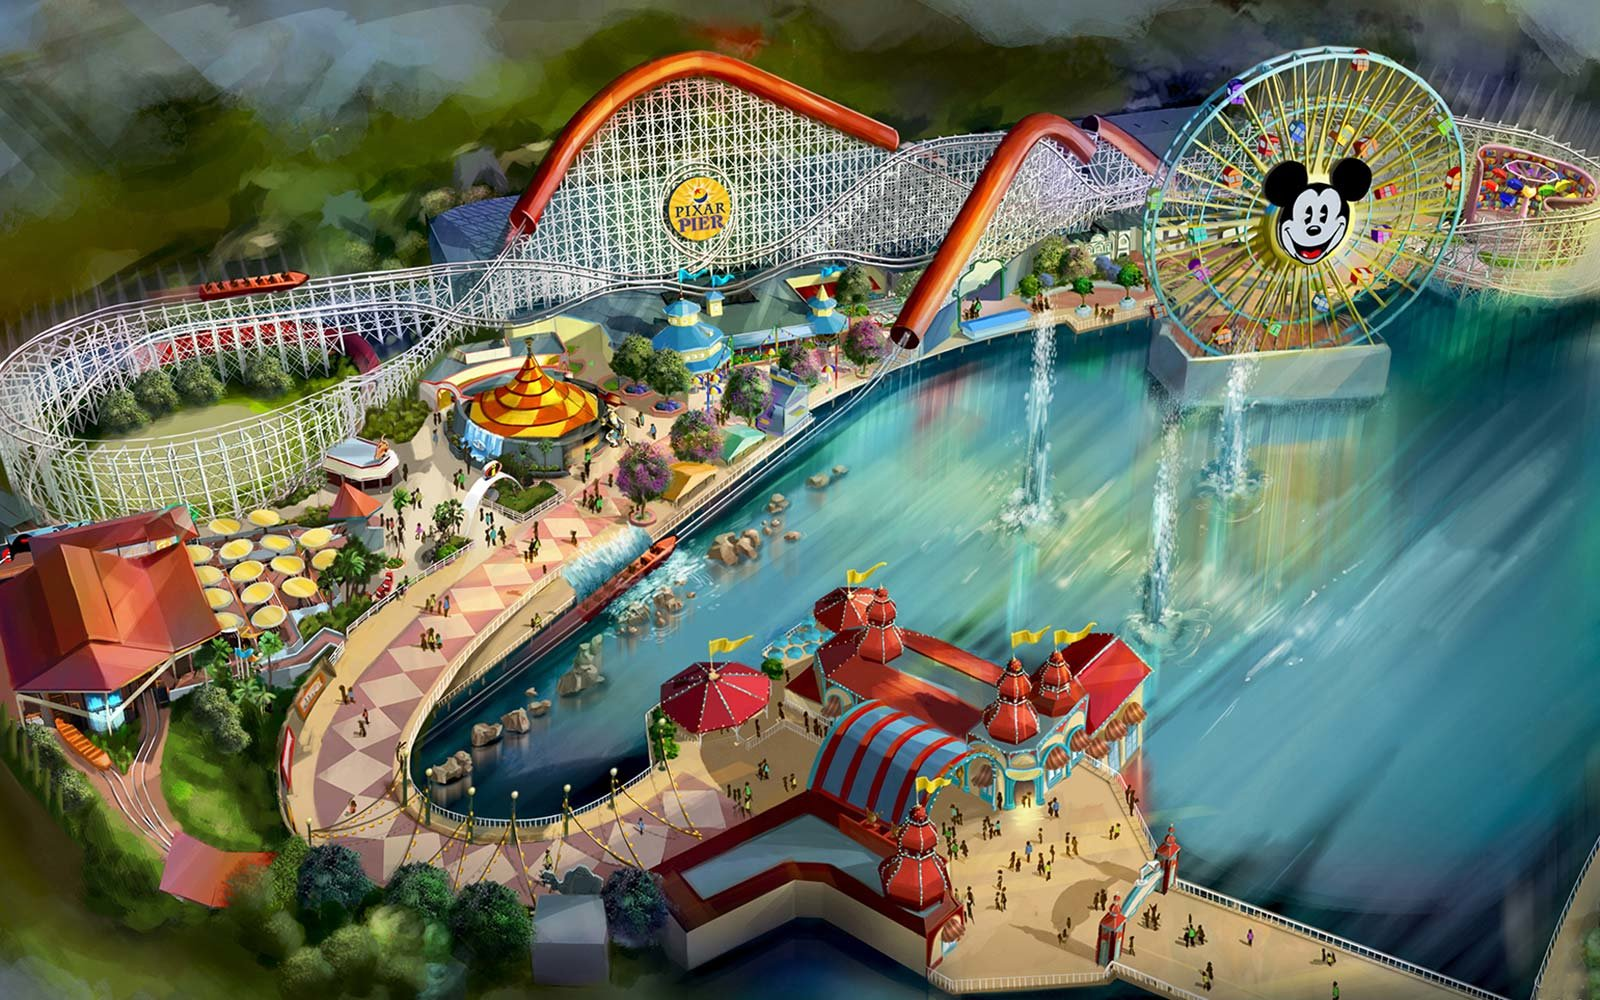 pixar pier roller coaster amusement park disneyland resort